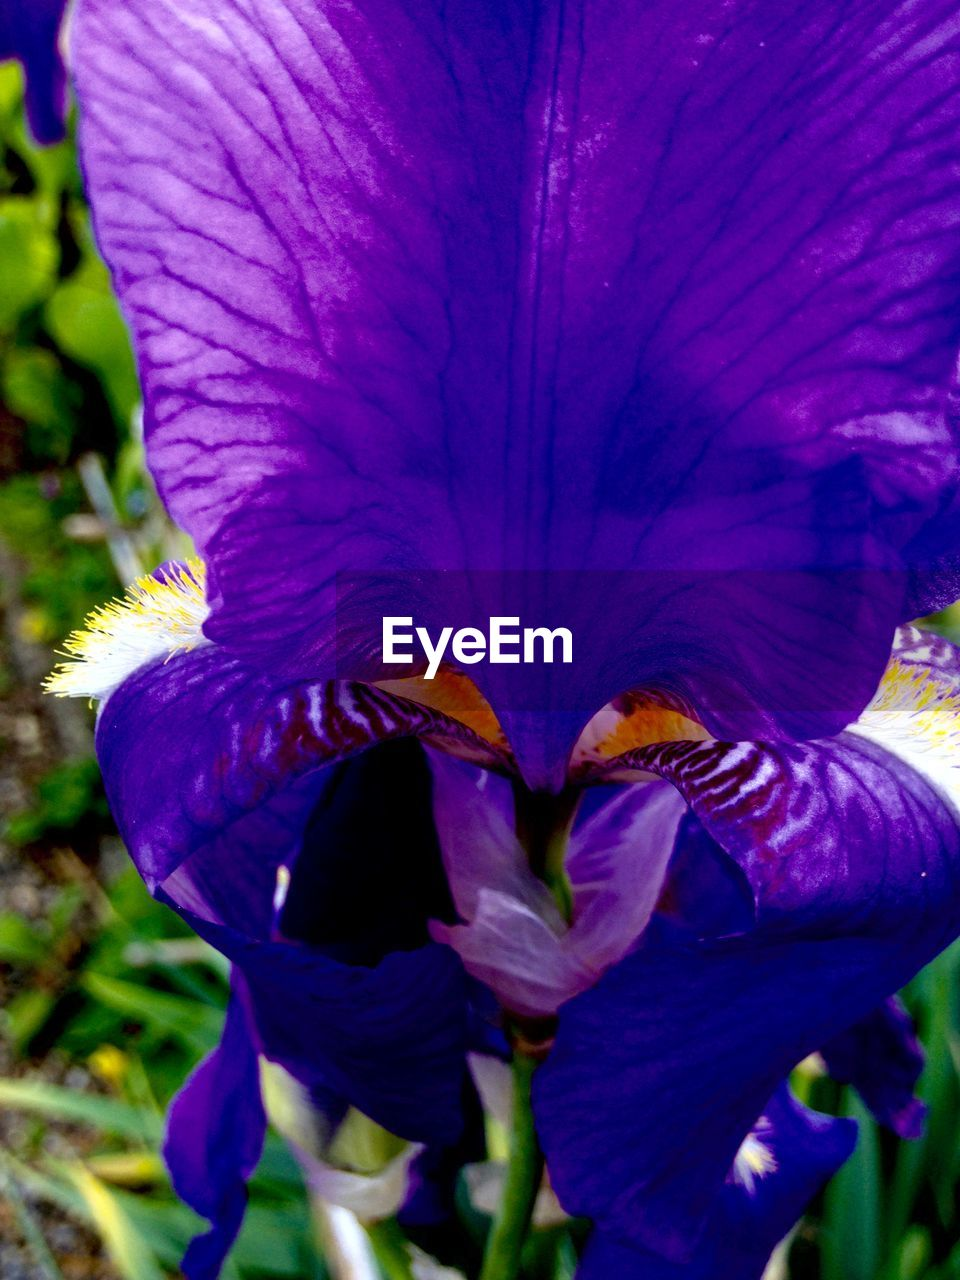 flower, petal, fragility, beauty in nature, growth, nature, freshness, flower head, plant, close-up, outdoors, no people, day, blooming, purple, springtime, stamen, iris - plant, day lily, petunia, crocus